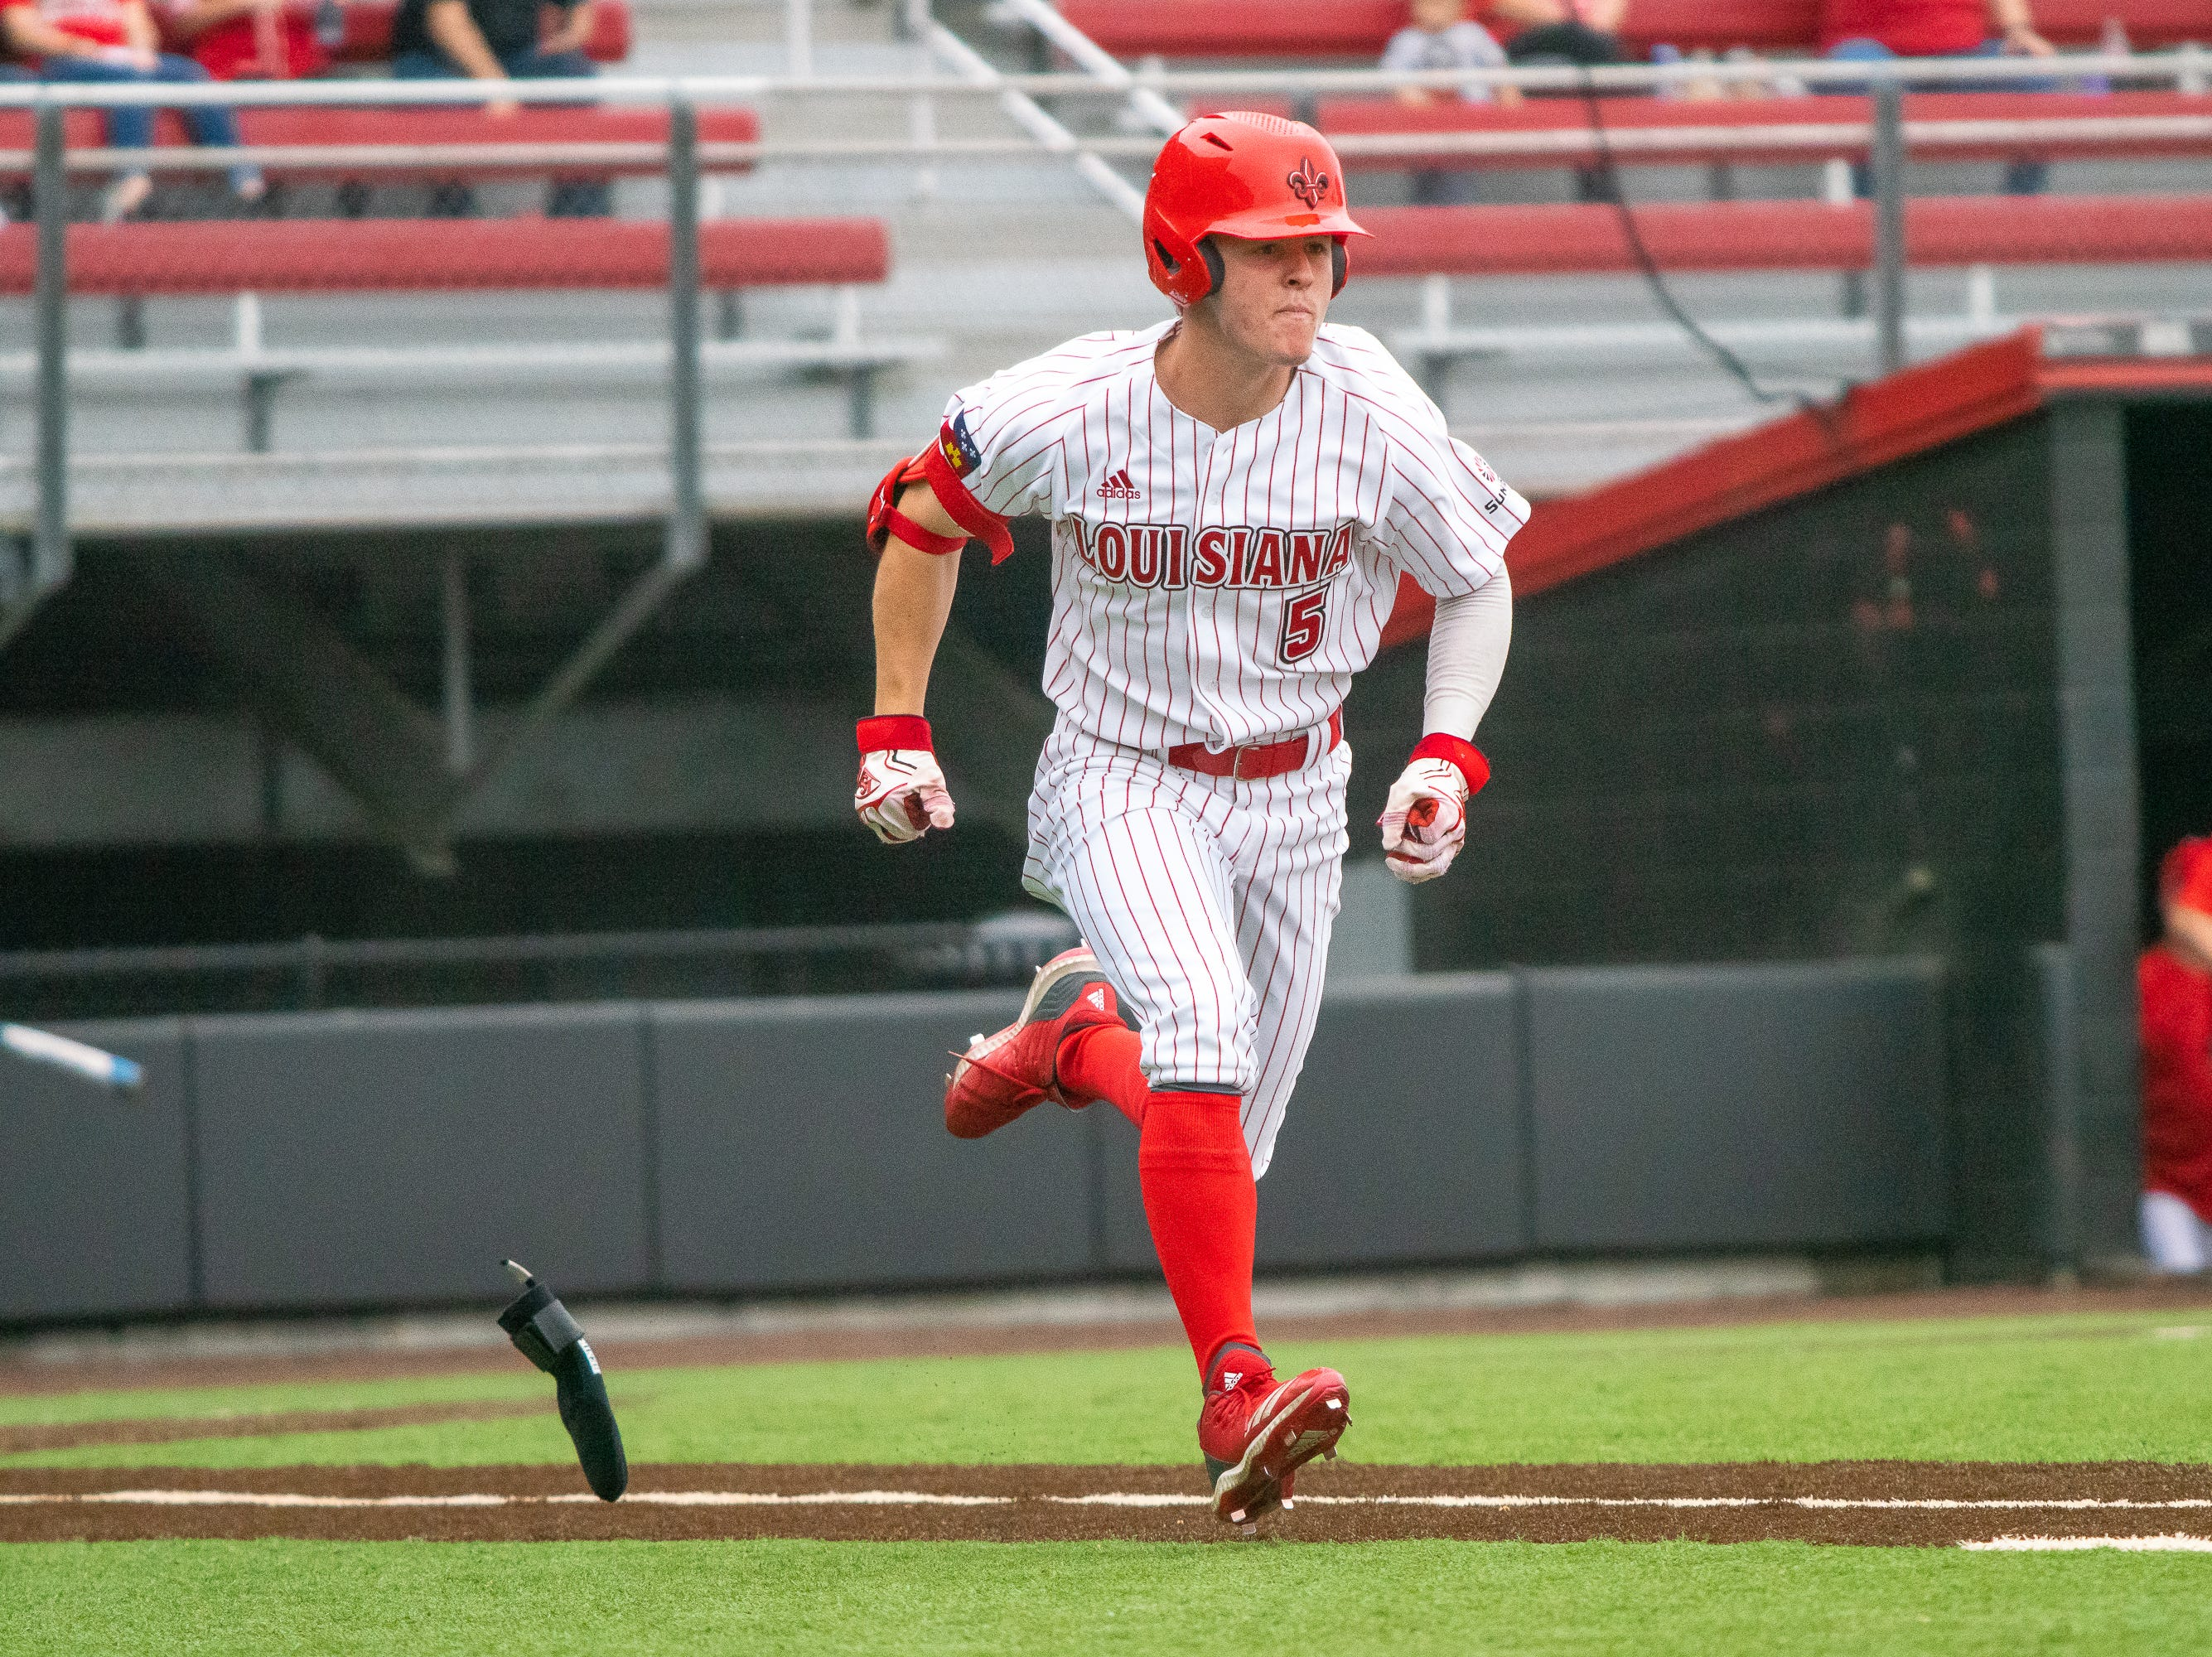 UL's Hayden Cantrelle sprints to first base as the Ragin' Cajuns take on the Loyola Marymount Lions at M.L. Tigue Moore Field on March 10, 2019.